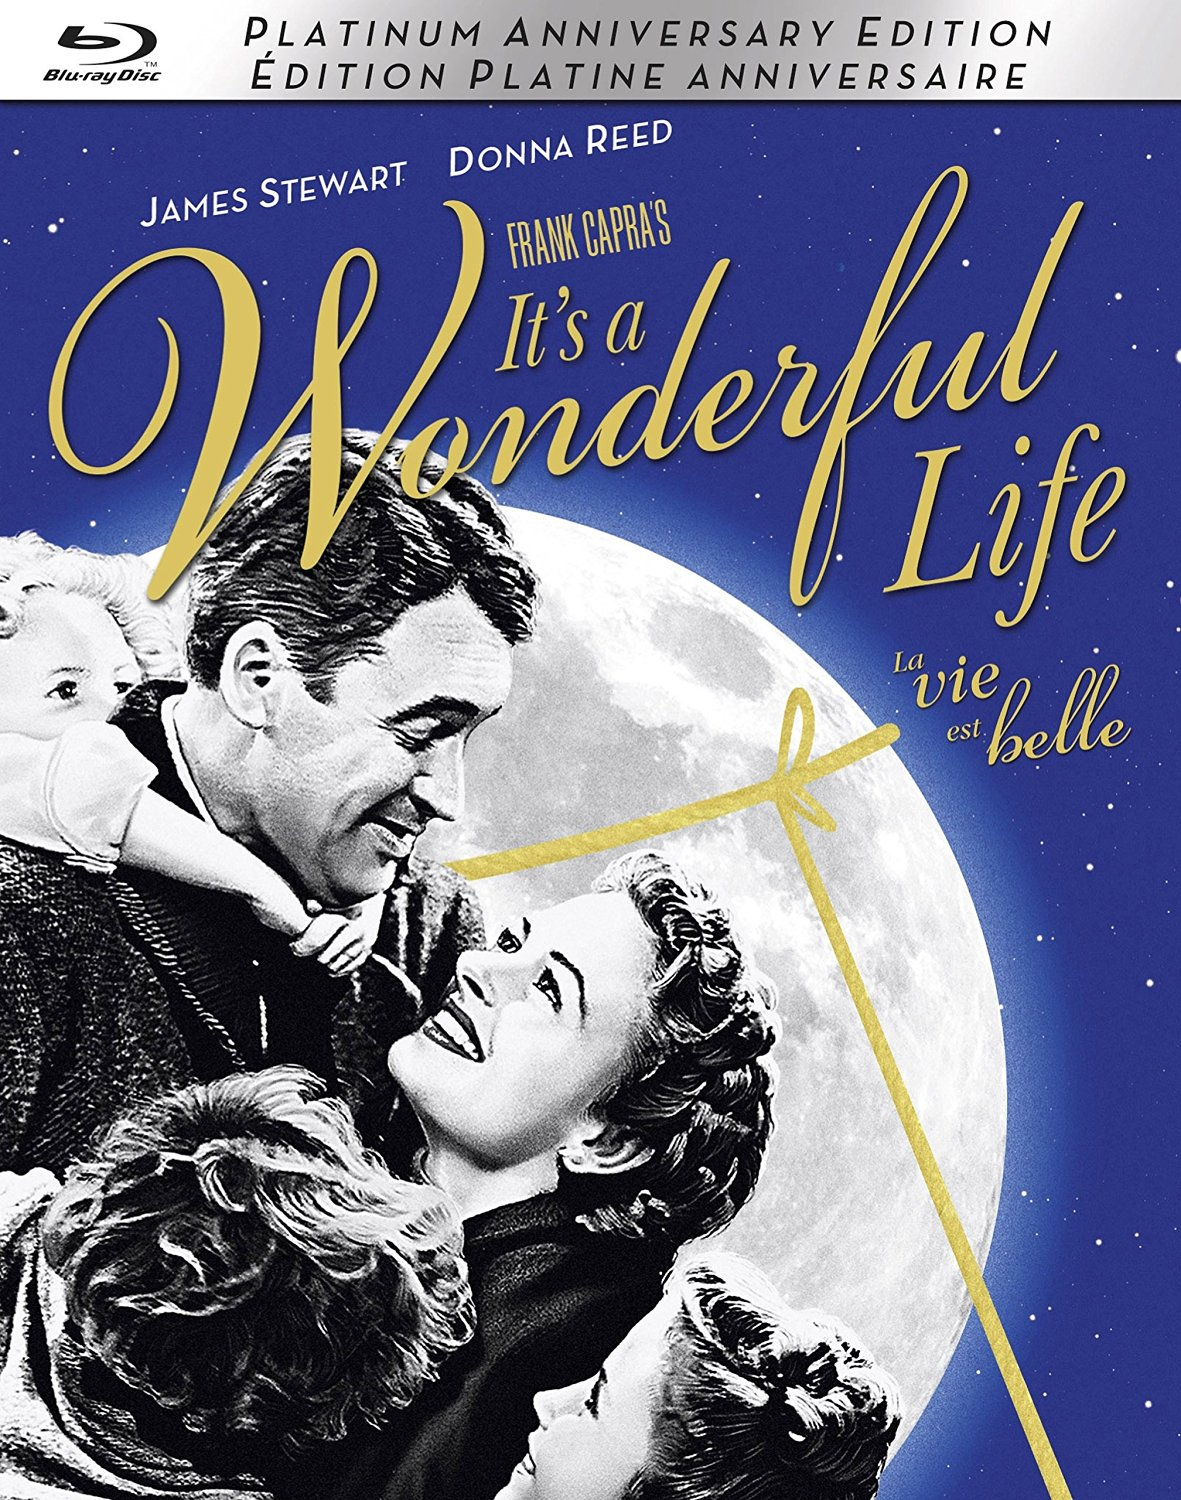 Blu Ray Review It S A Wonderful Life Platinum Anniversary Edition One Movie Our Views